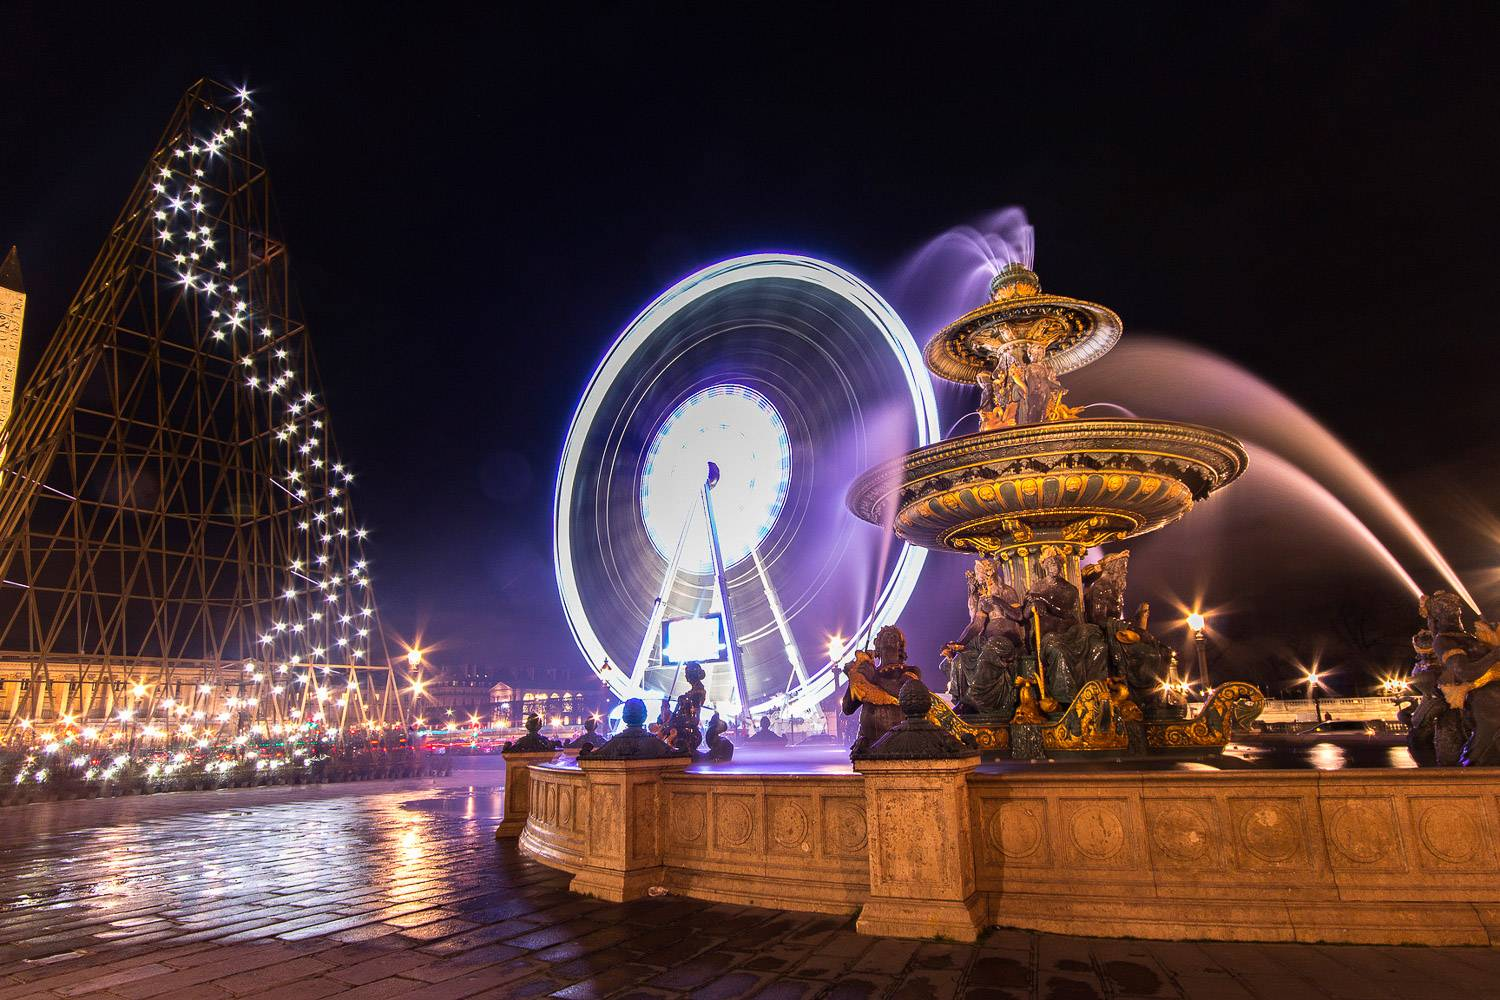 Image of the Place de la Concorde with a ferris wheel, fountain and Christmas tree setup.